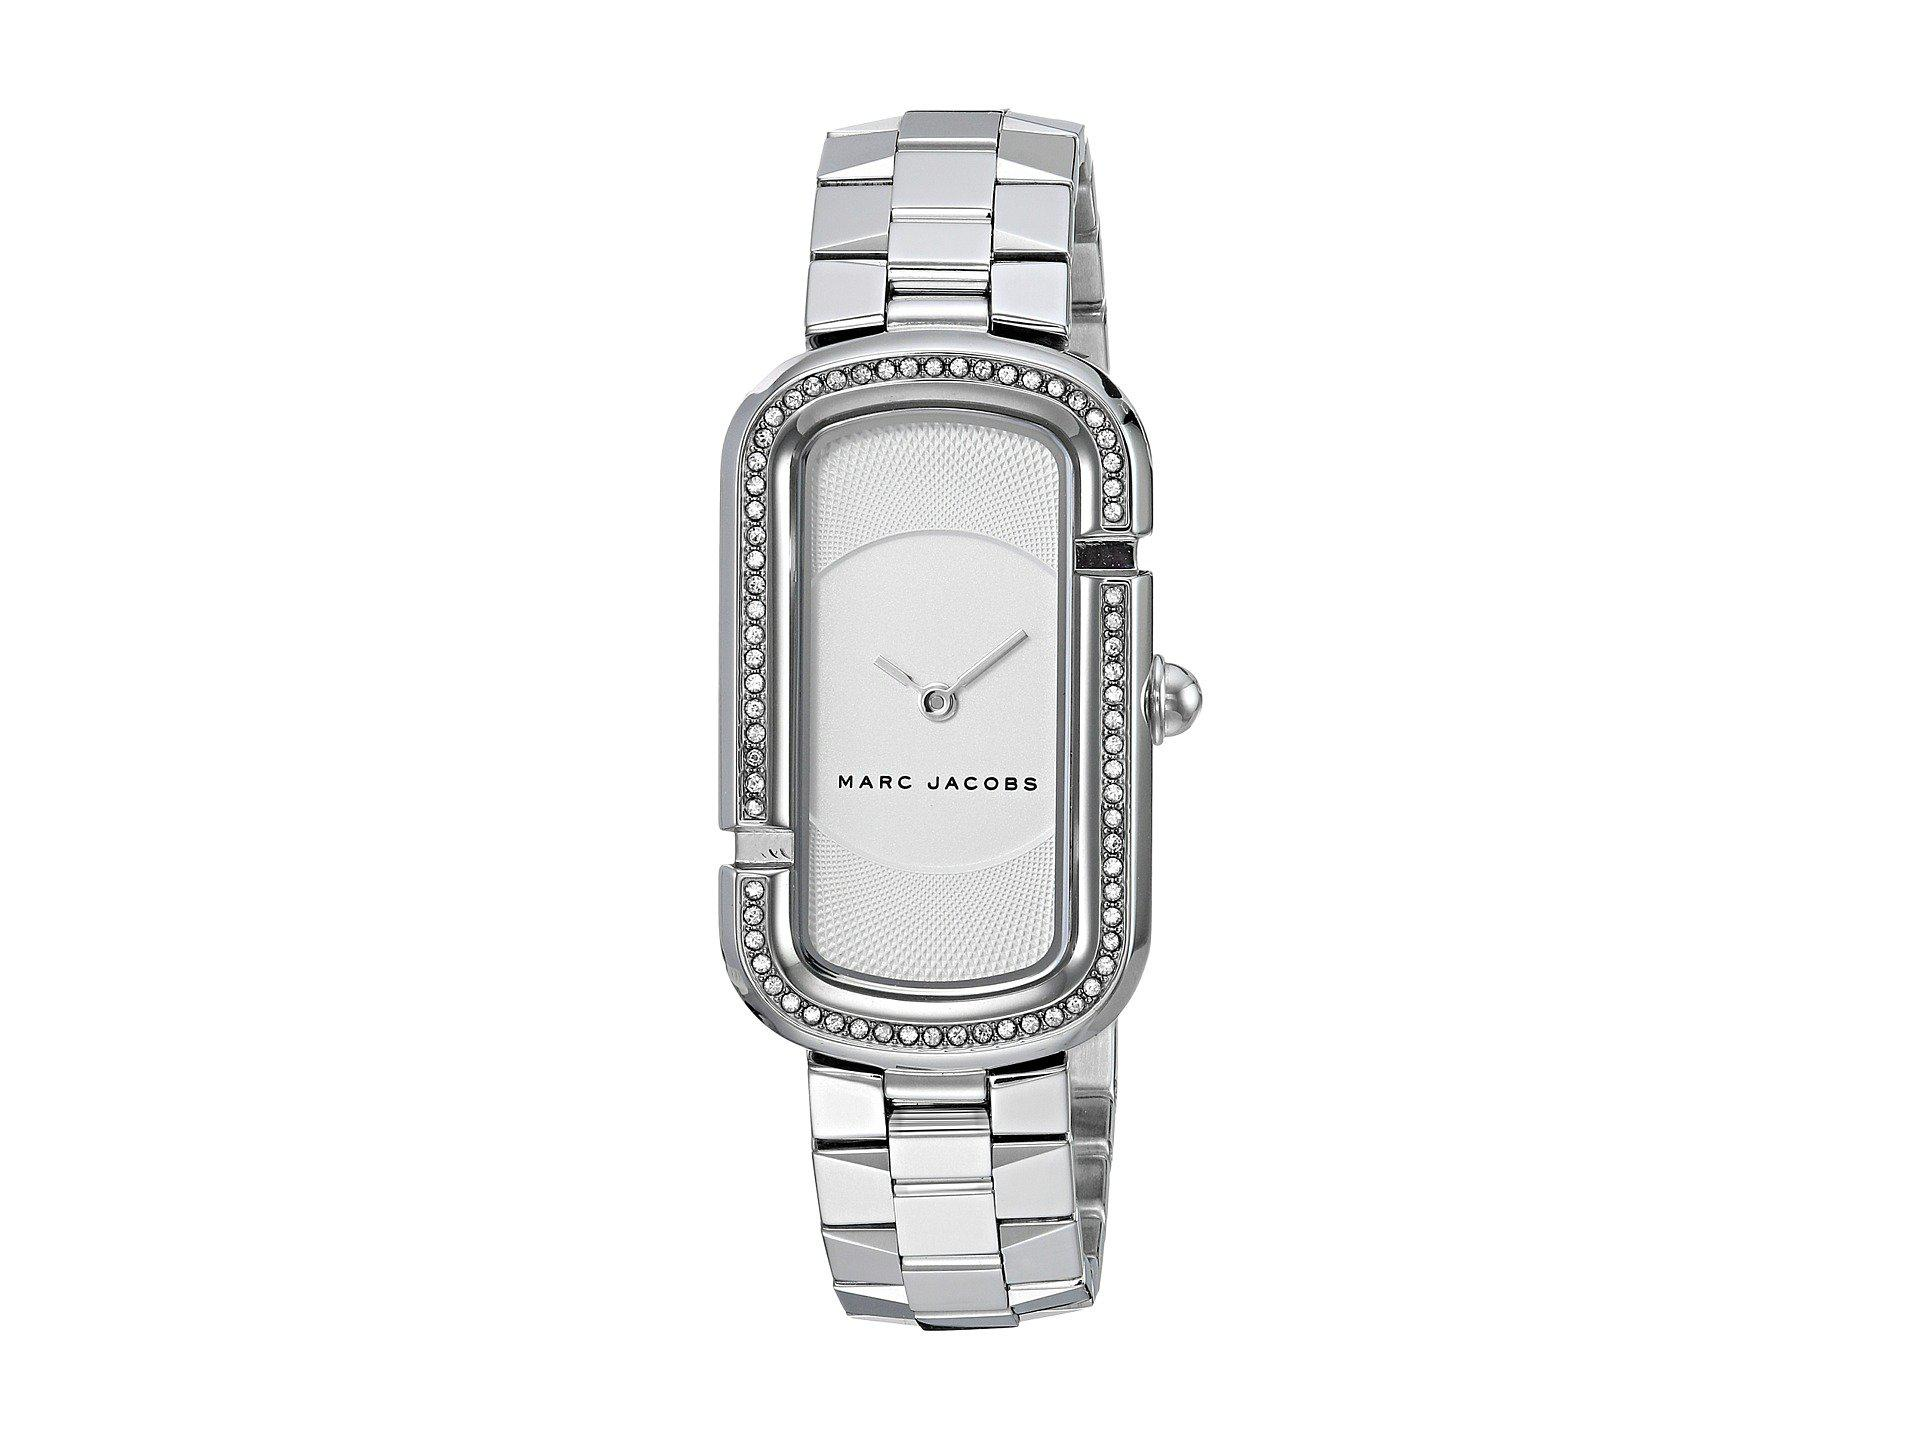 Marc Jacobs Womens Riley White Leather Watch Mj1517 Details Mj1438 Gallery